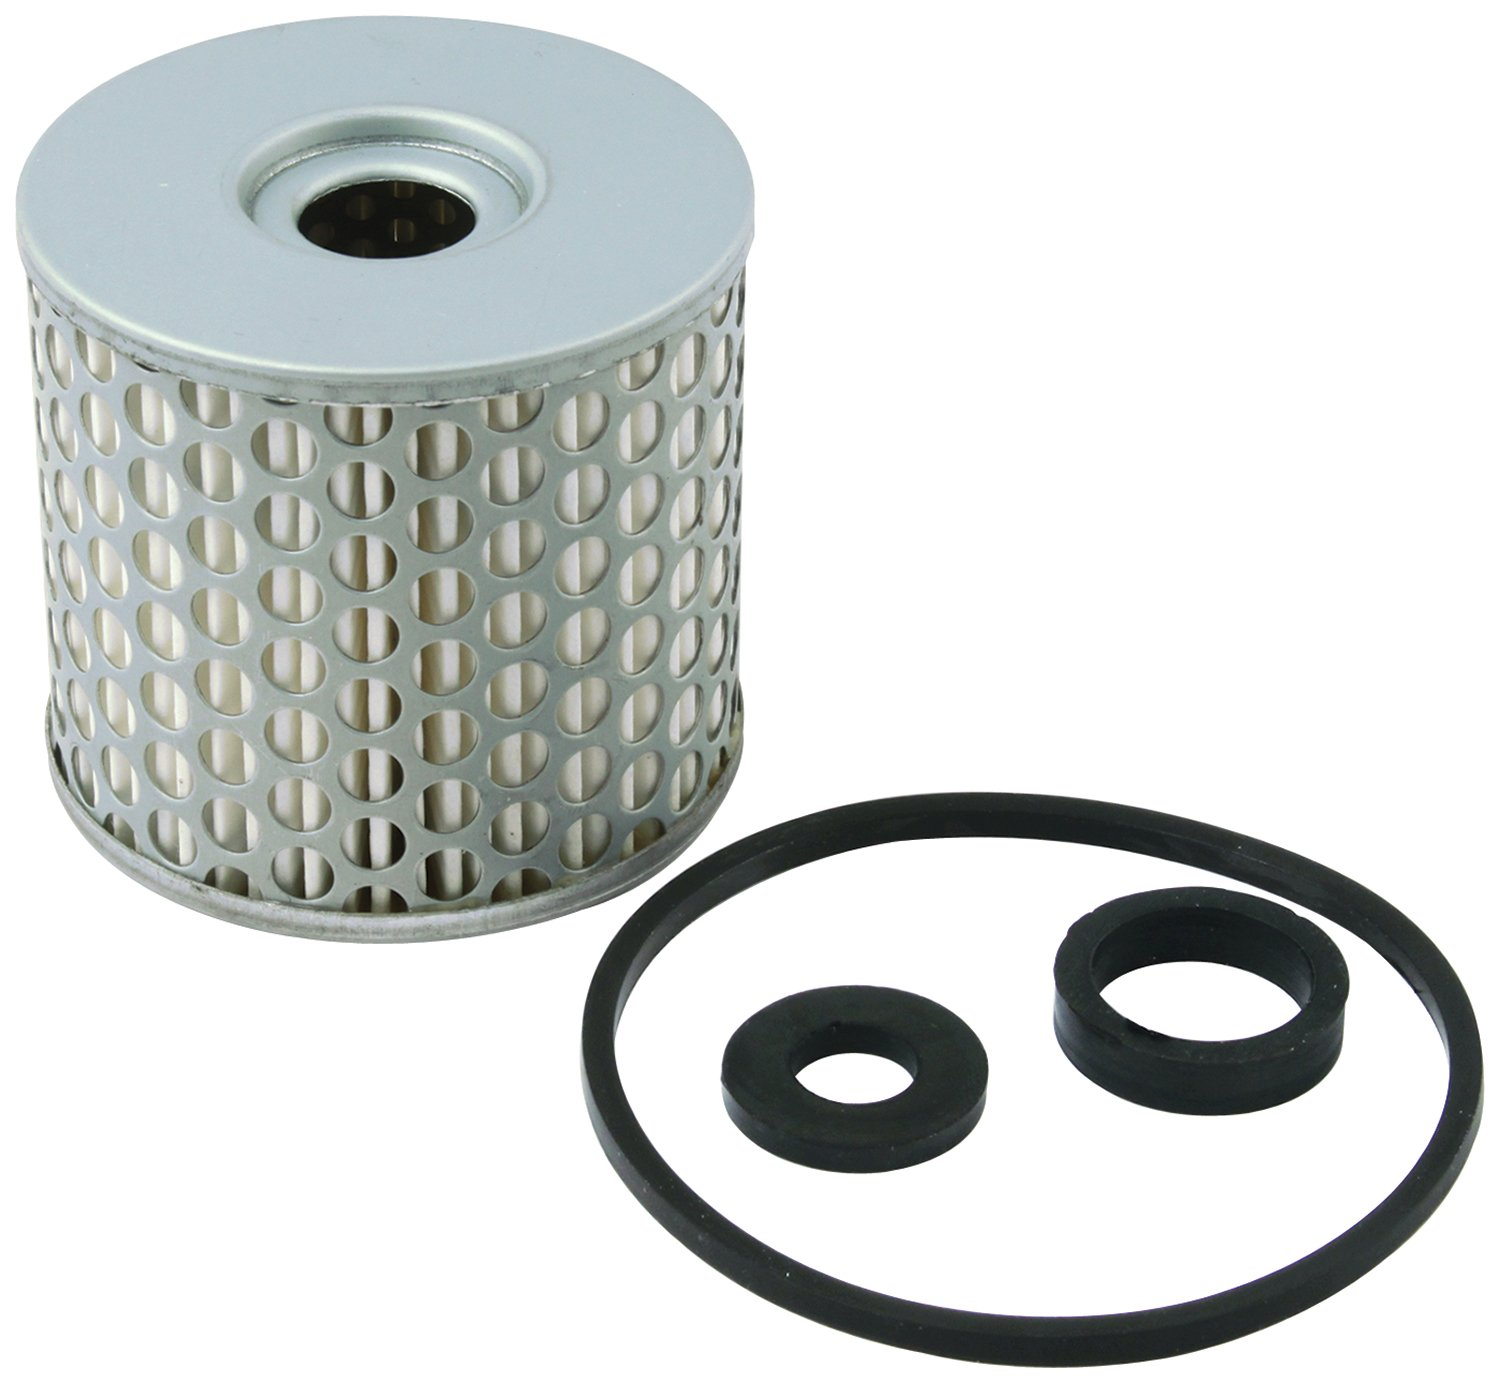 Amazon.com: Allstar ALL40251 Fuel Filter Element for Allstar ALL40250  Canister Style Fuel Filter: Automotive